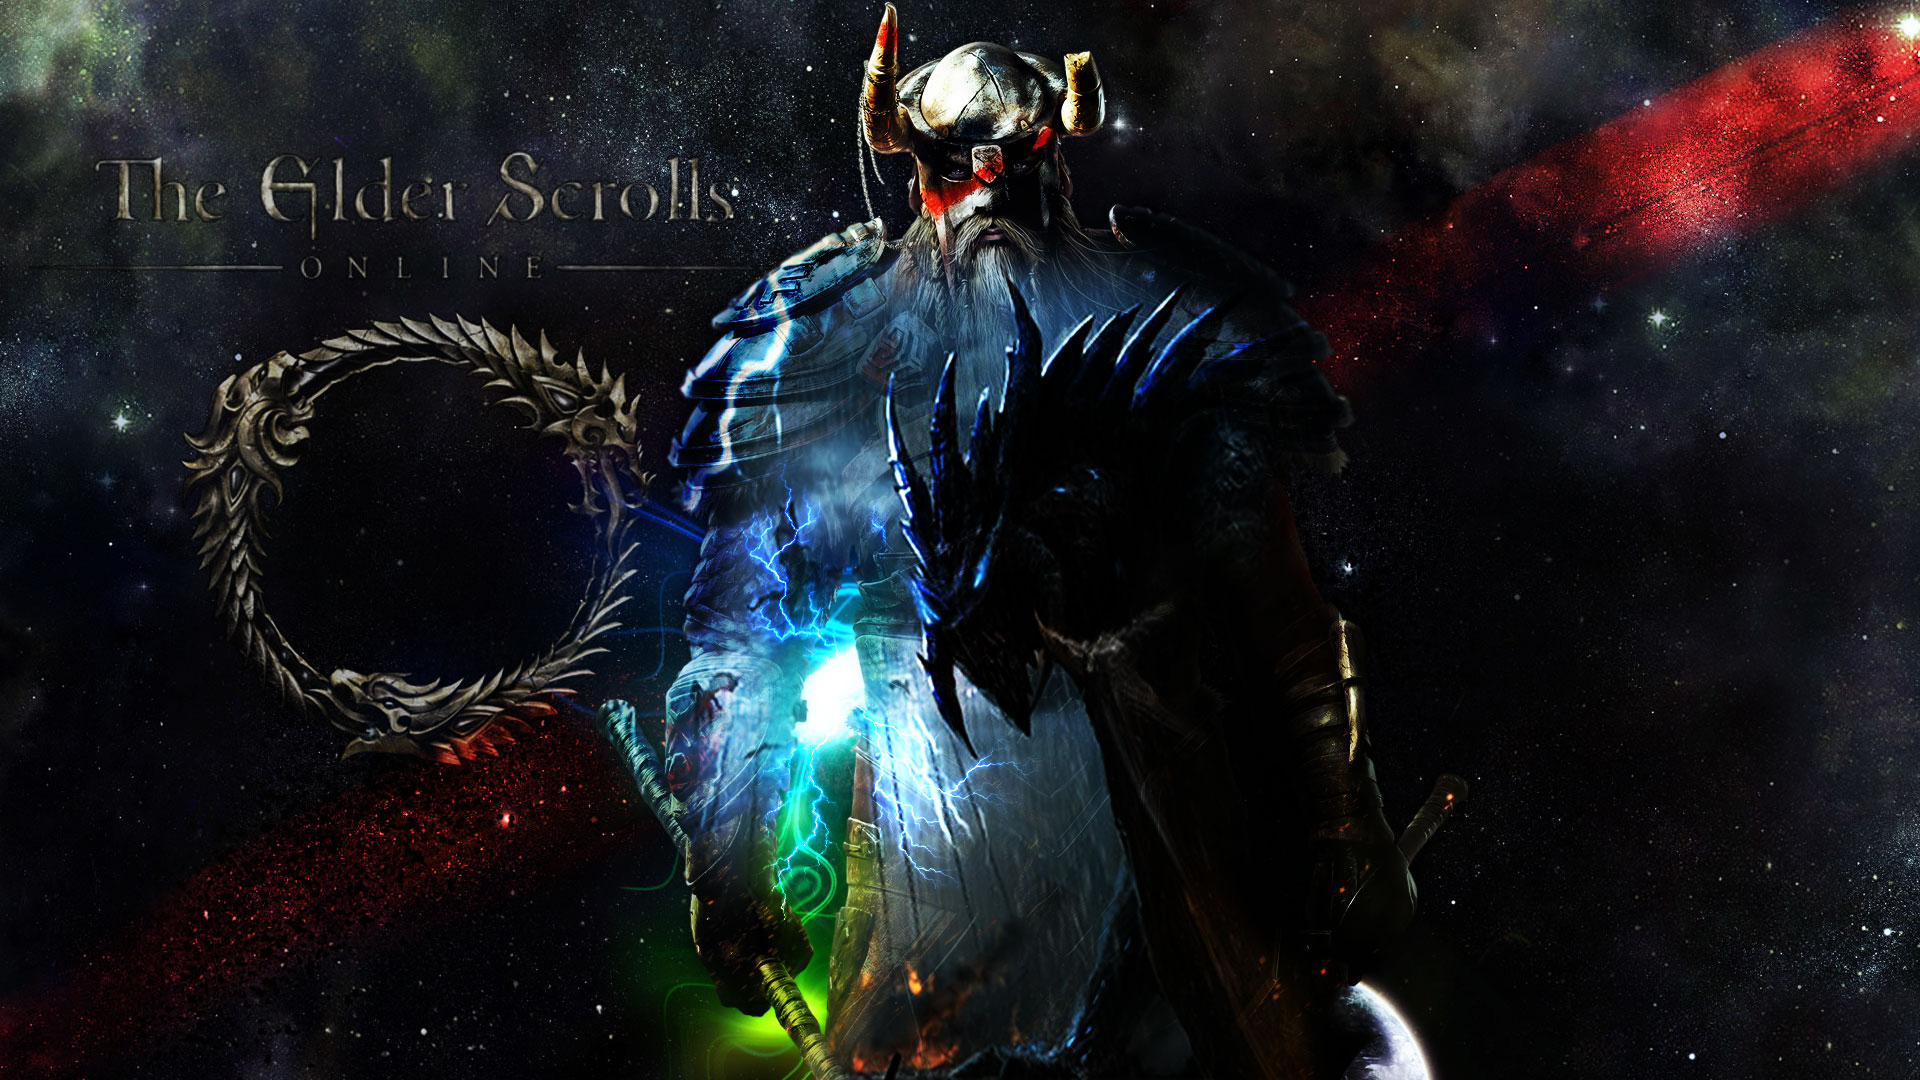 The Elder Scrolls Wallpaper: The Elder Scrolls Online Wallpapers, Pictures, Images